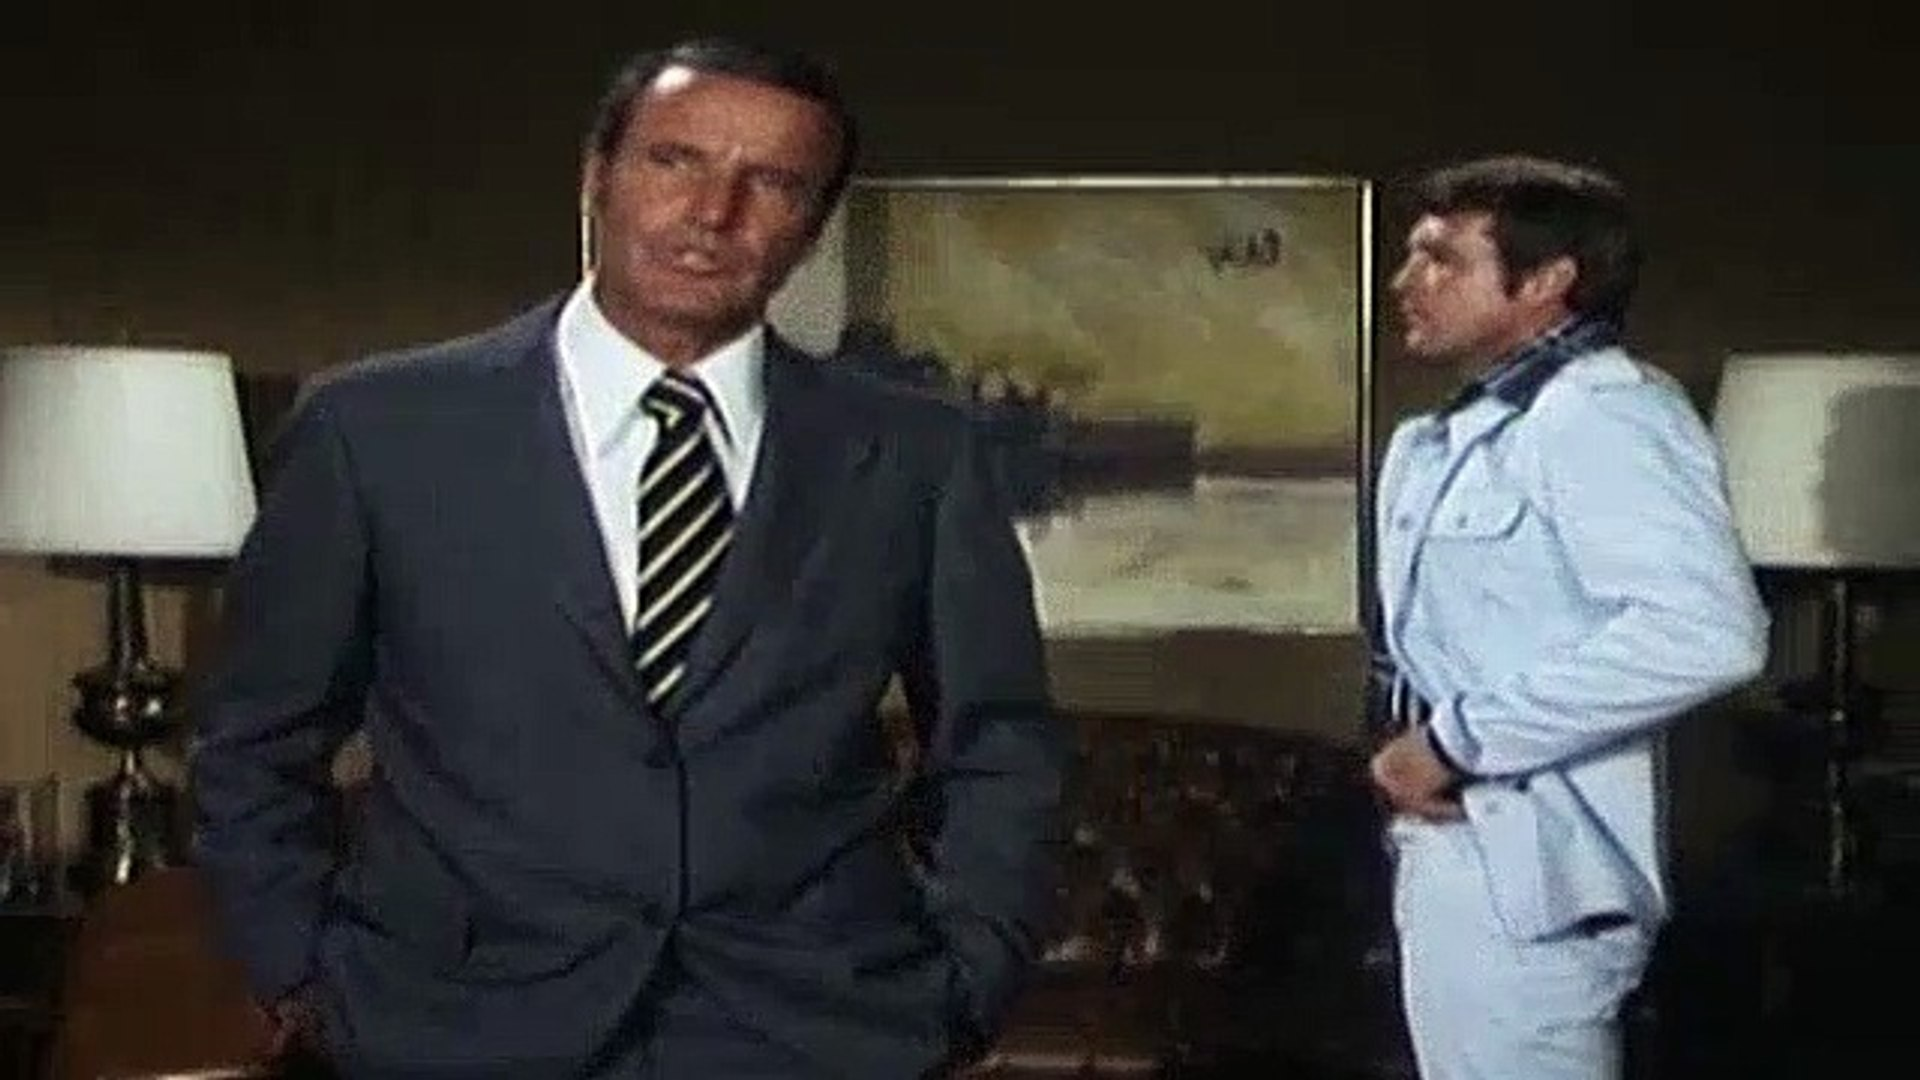 The Six Million Dollar Man Season 3 Episode 13 - Clark Templeton O'Flaherty